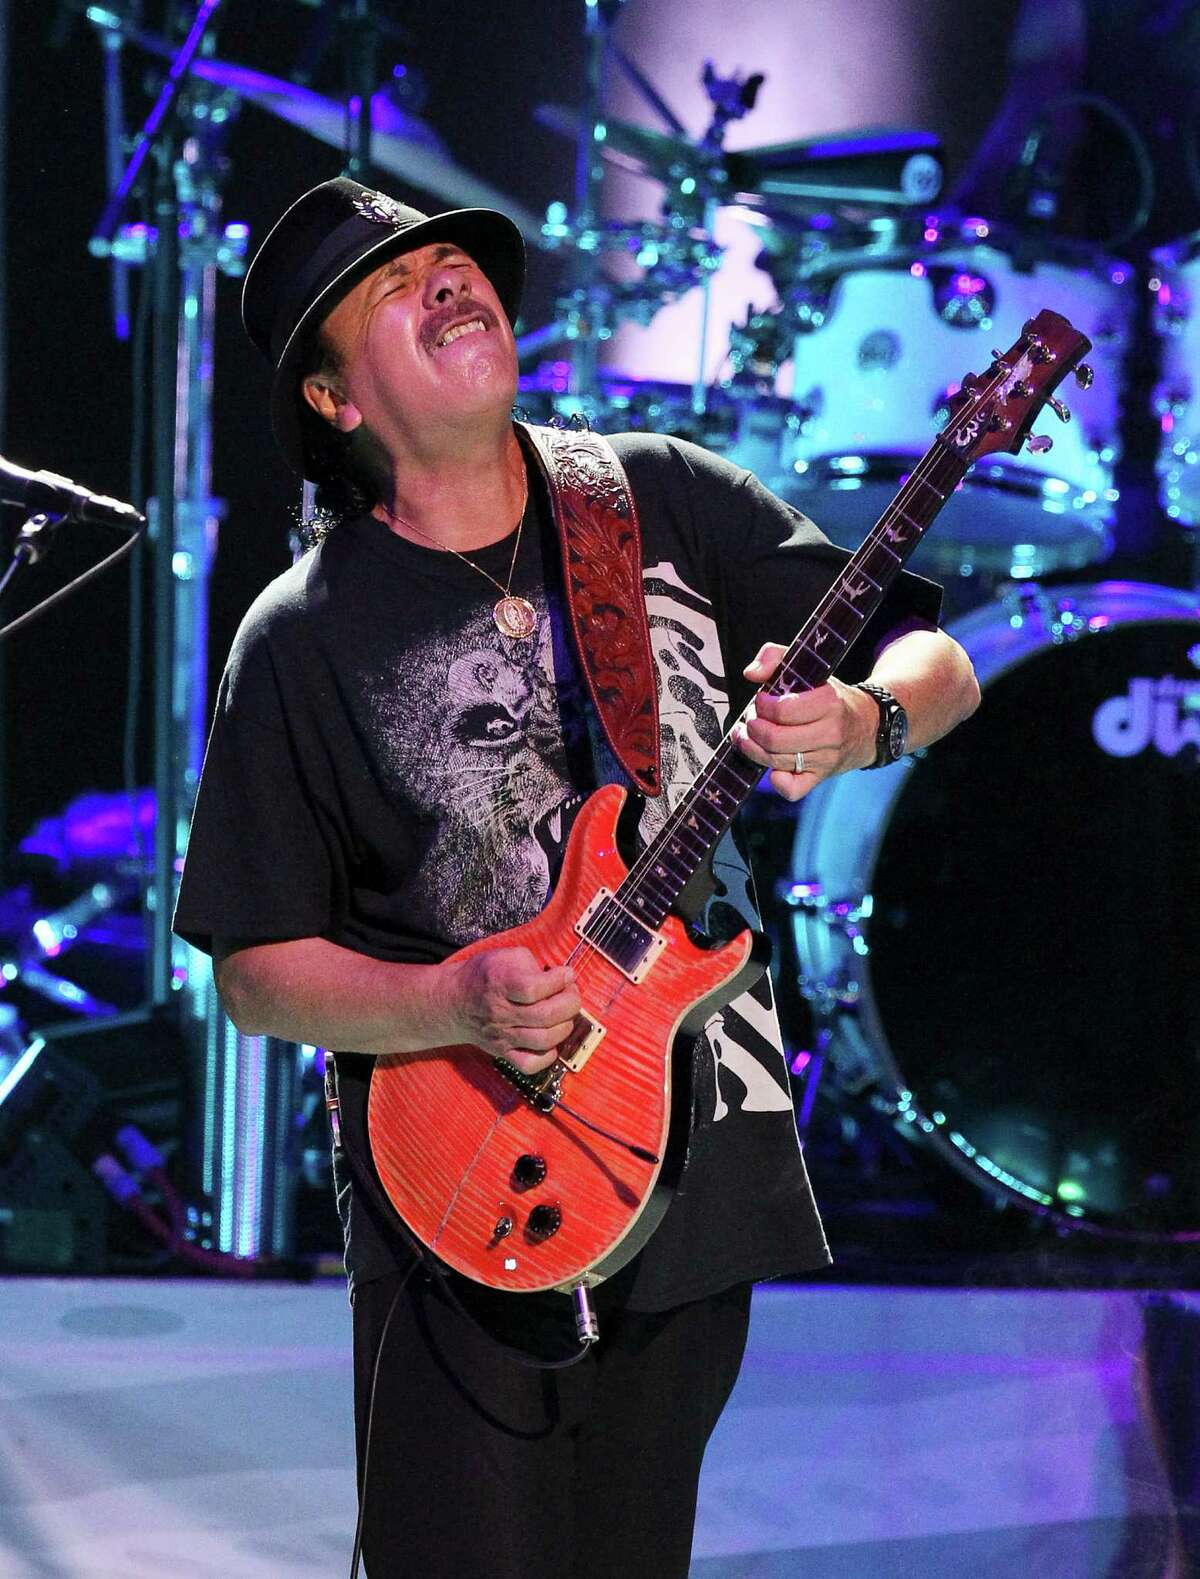 Legendary performer and guitarist Carlos Santana performs at the Tobin Center on Tuesday, Sept. 30, 2014.